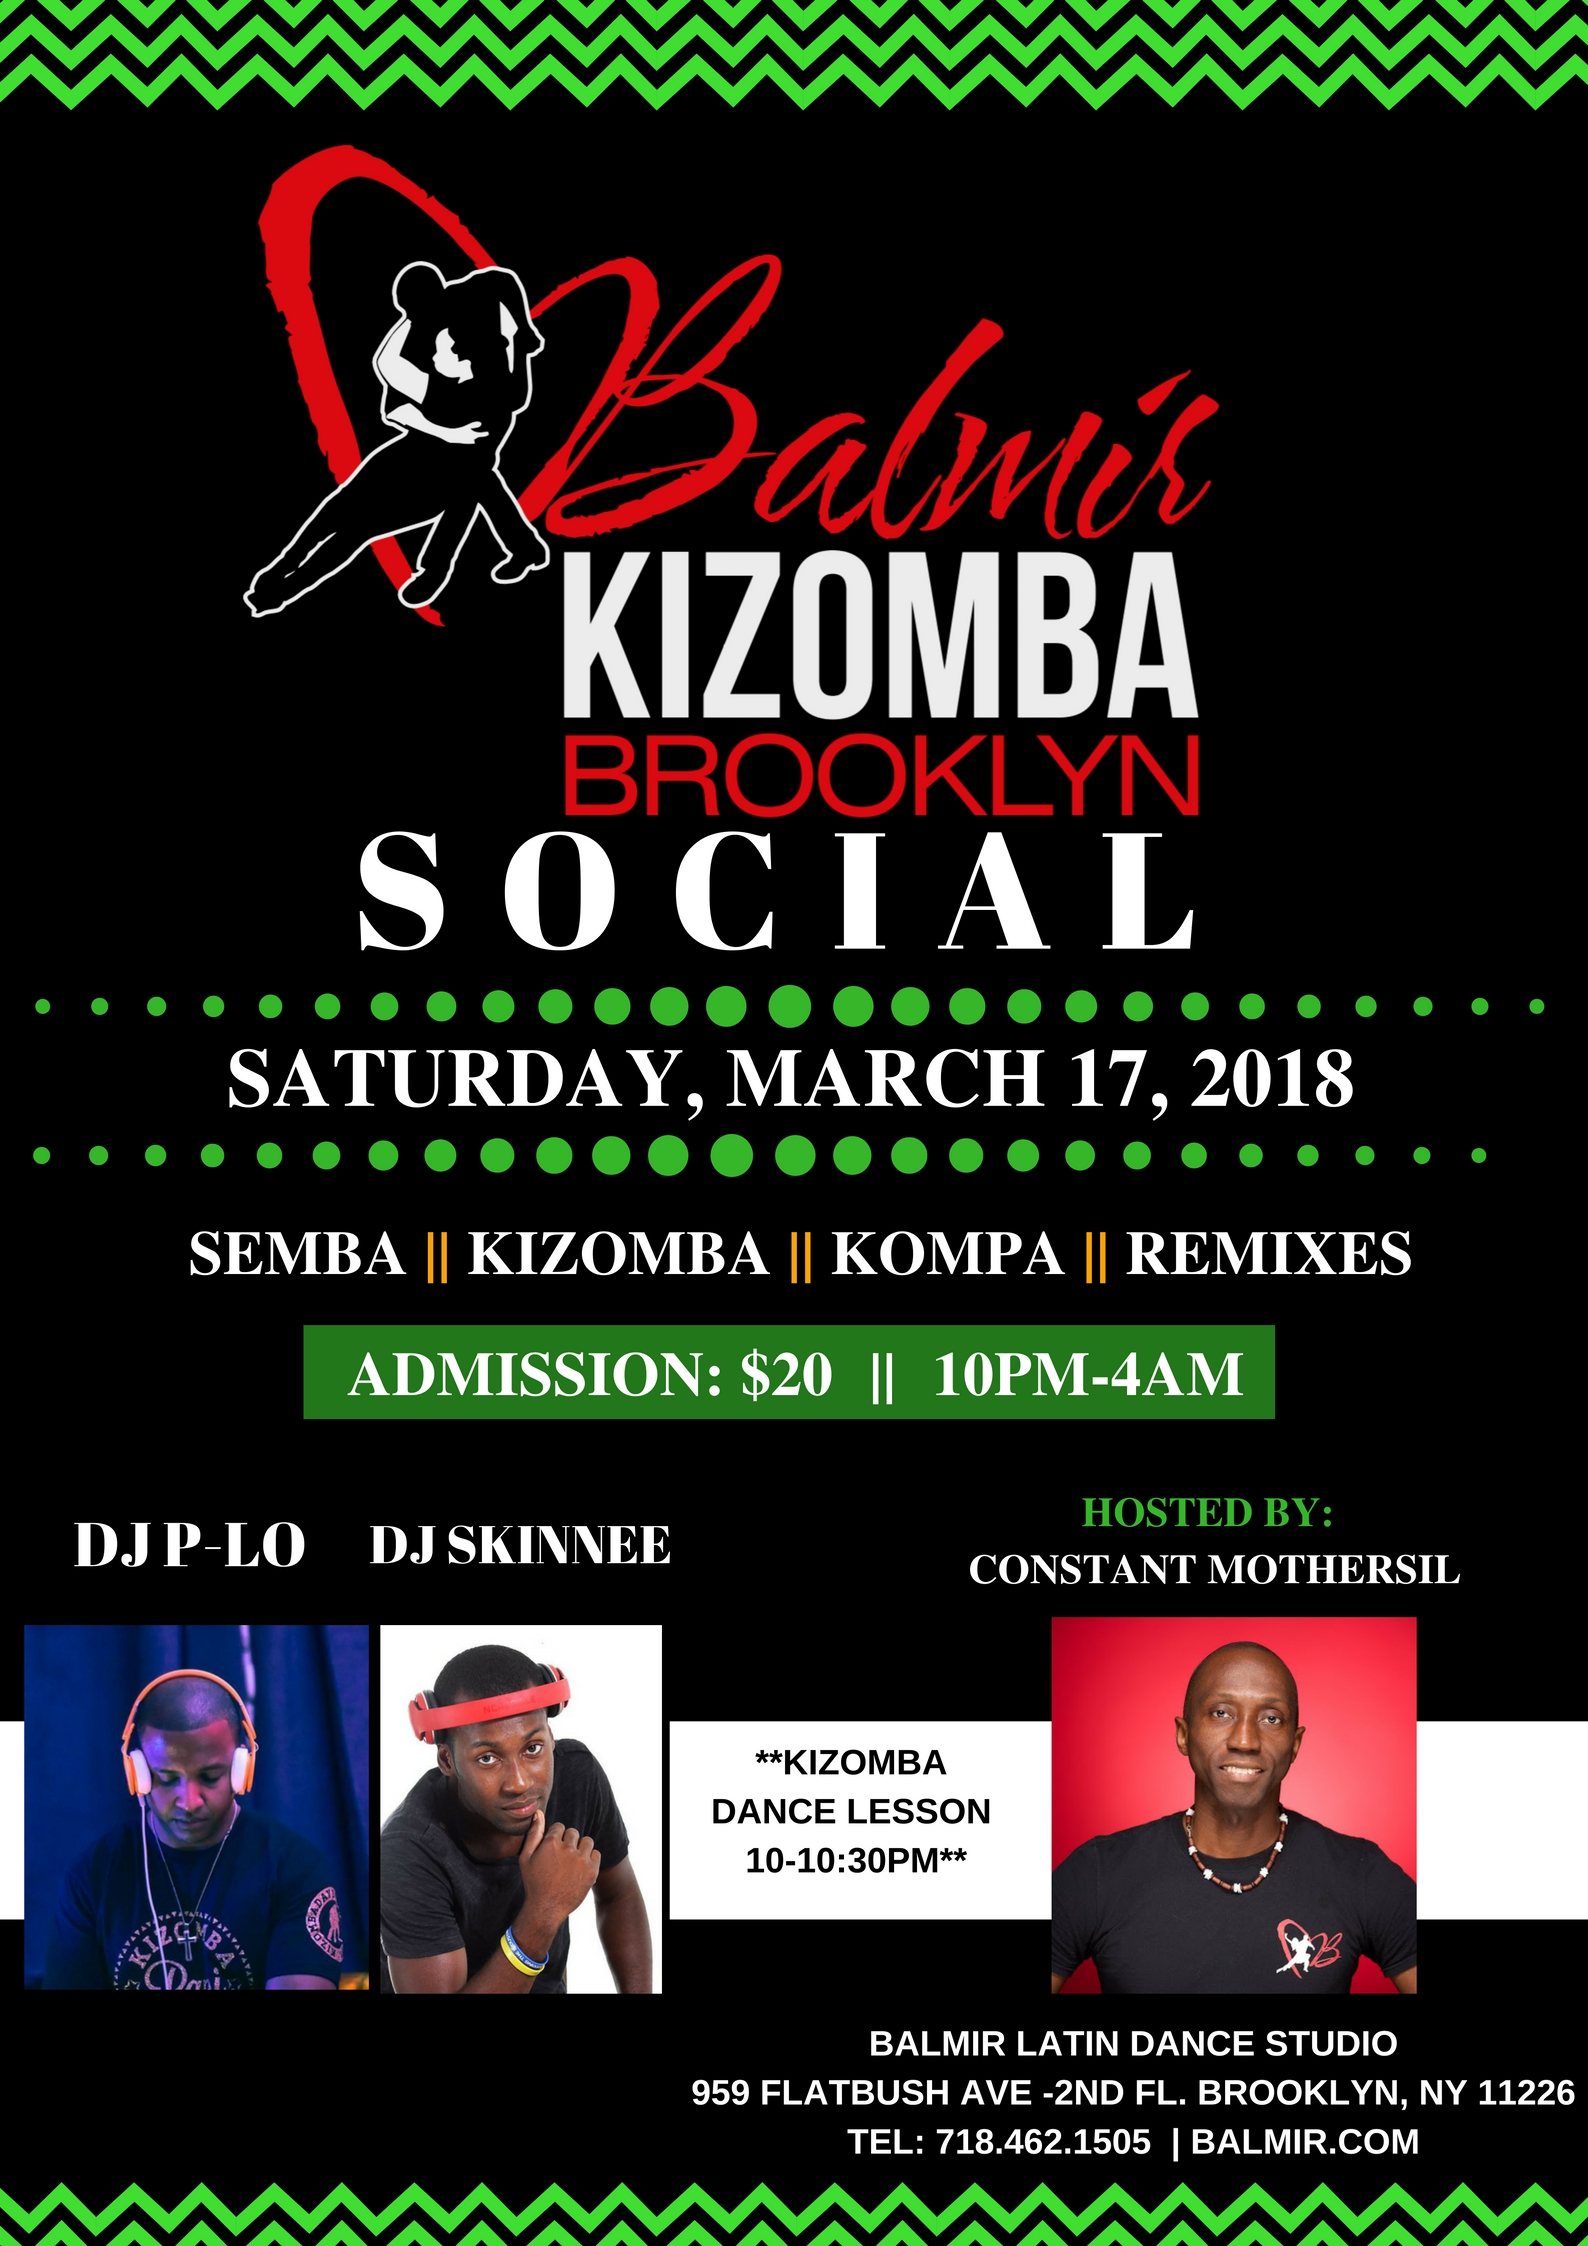 SATURDAY, MARCH 17, 2018 KIZOMBA SOCIAL IN BROOKLYN, NY DANCE PARTY SATURDAY